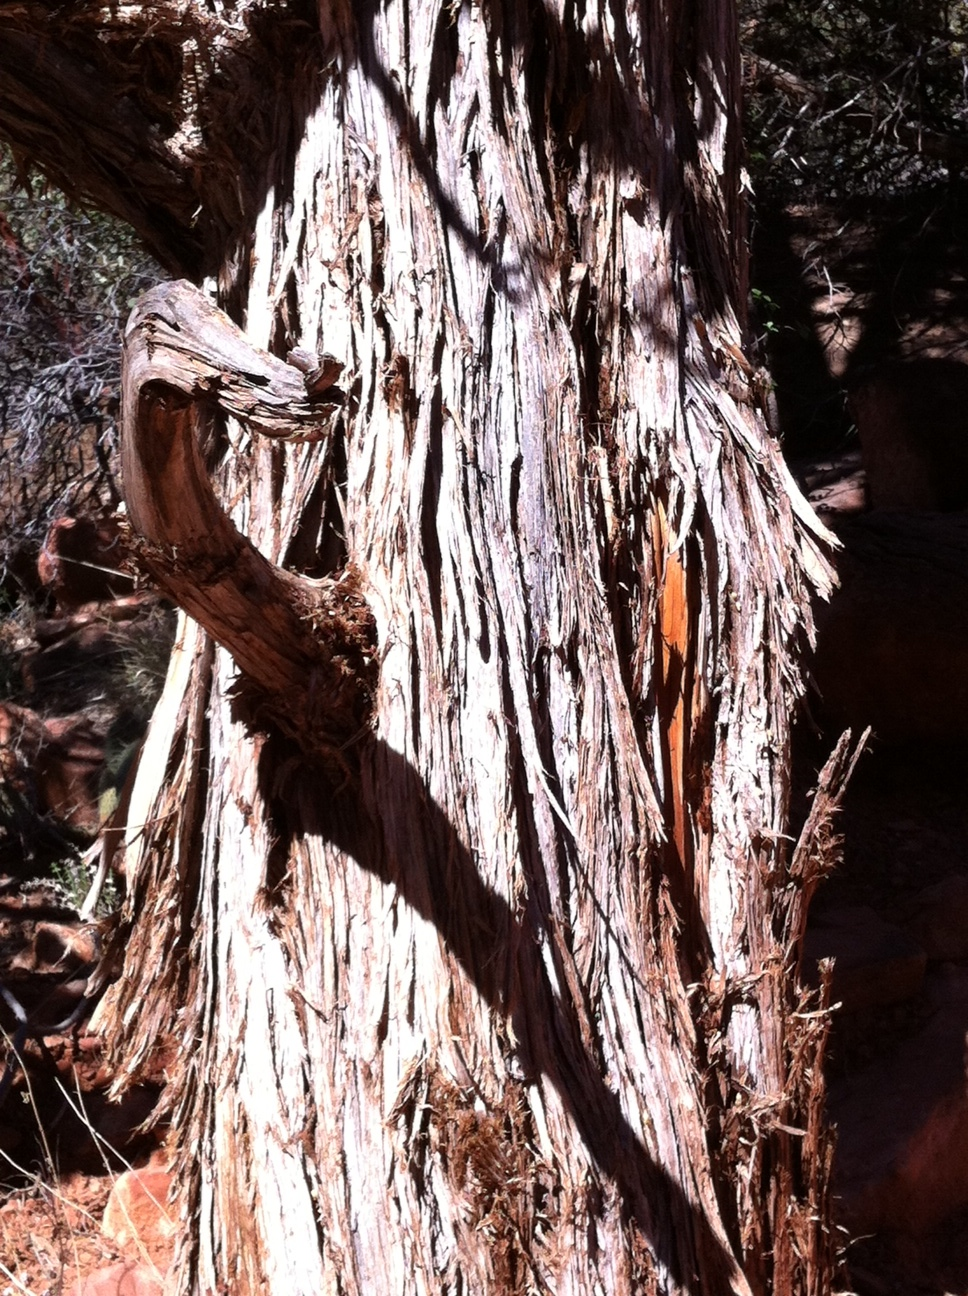 An example of the shedding bark of the one of the larger trees.